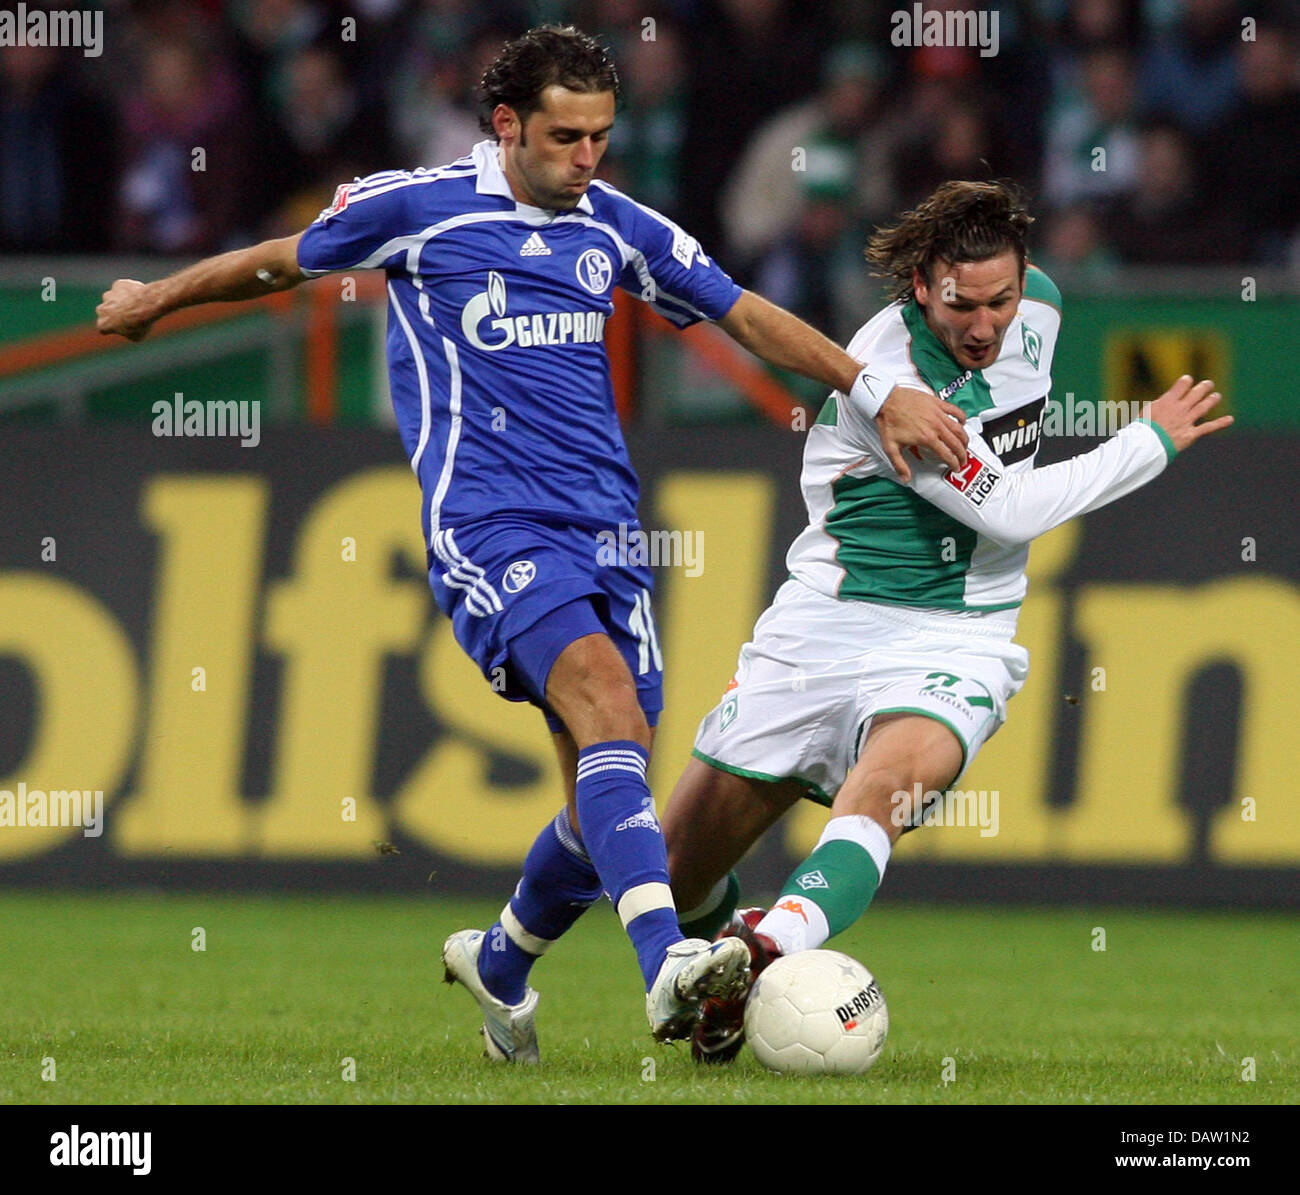 Schulz Bremen schalke s lincoln l vies for the with bremen s tchristian